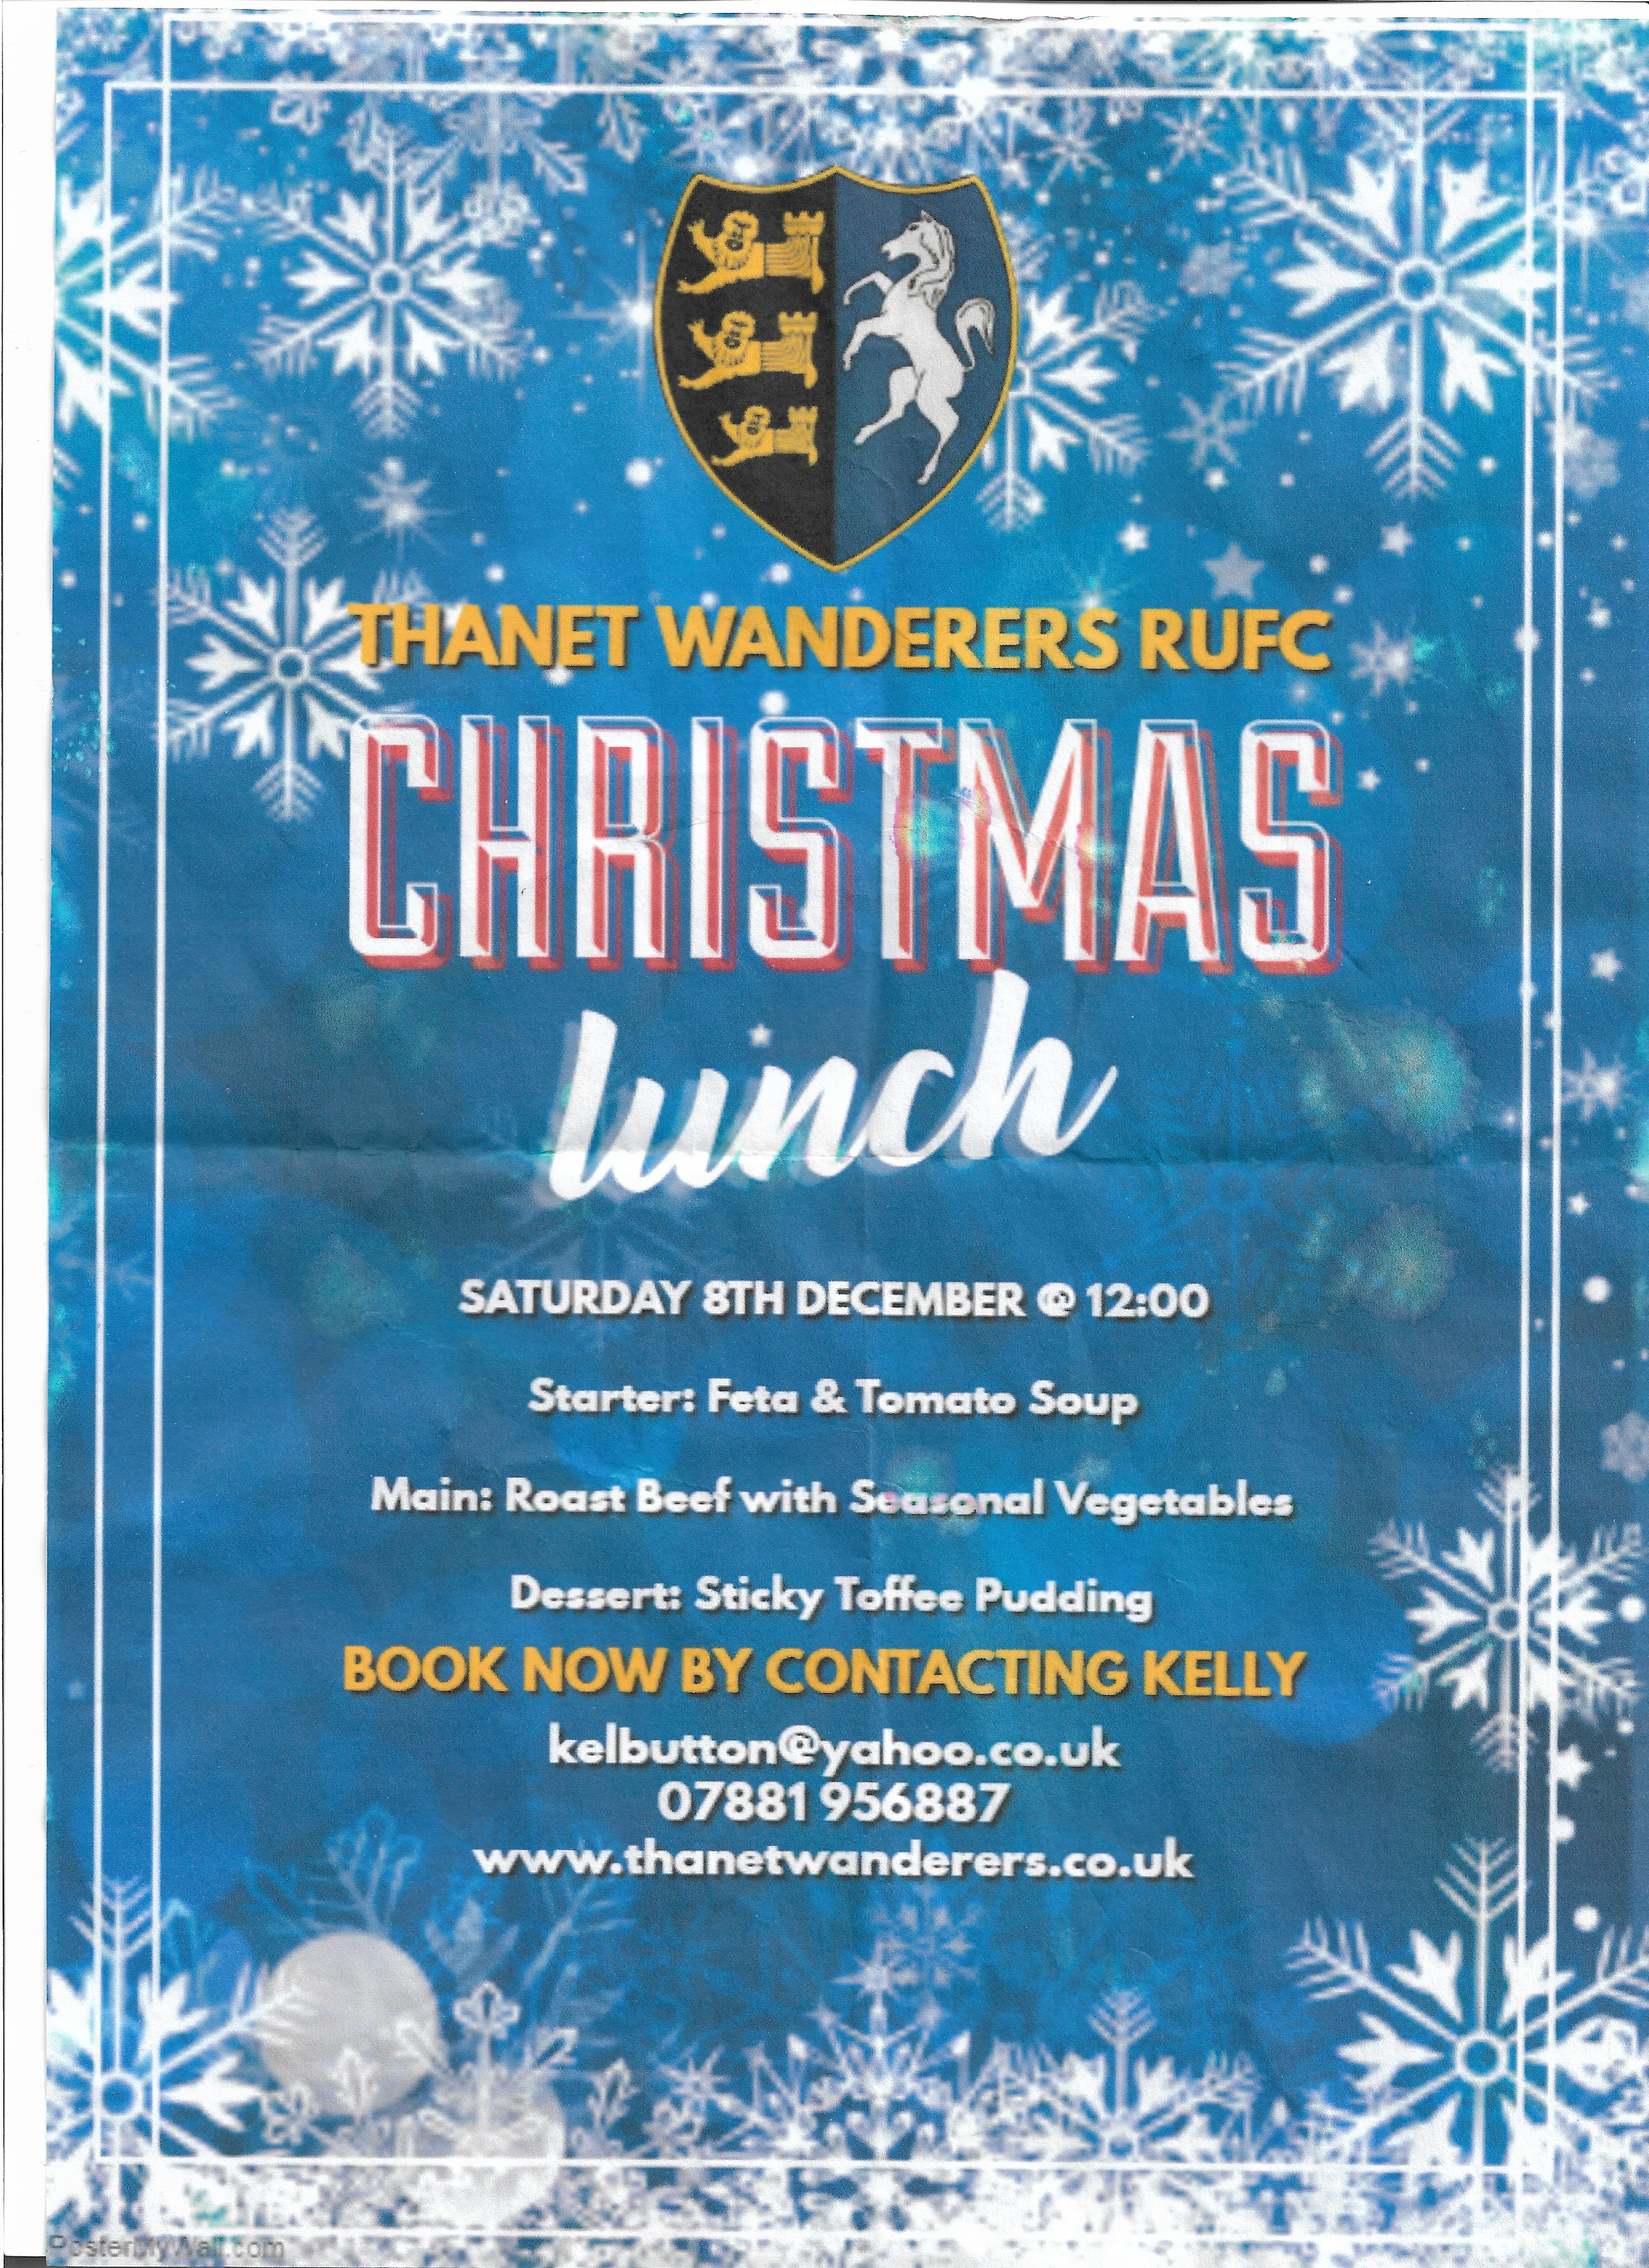 CHRISTMAS LUNCH 8TH DECEMBER